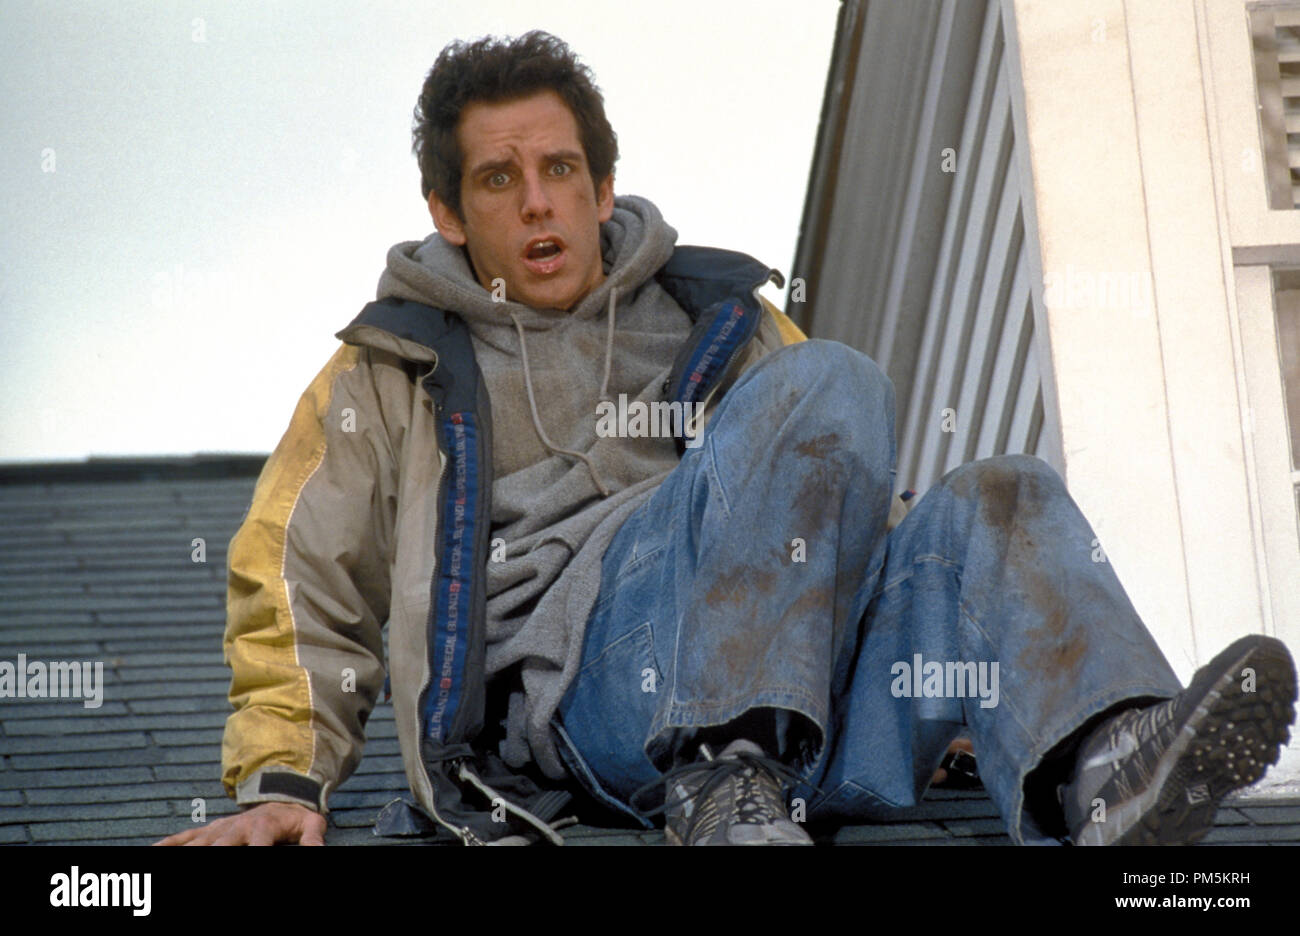 Film Still / Publicity Stills from 'Meet the Parents' Ben Stiller © 2000 Universal / Dreamworks Photo Credit: Phillip V. Caruso File Reference # 30846369THA  For Editorial Use Only -  All Rights Reserved - Stock Image